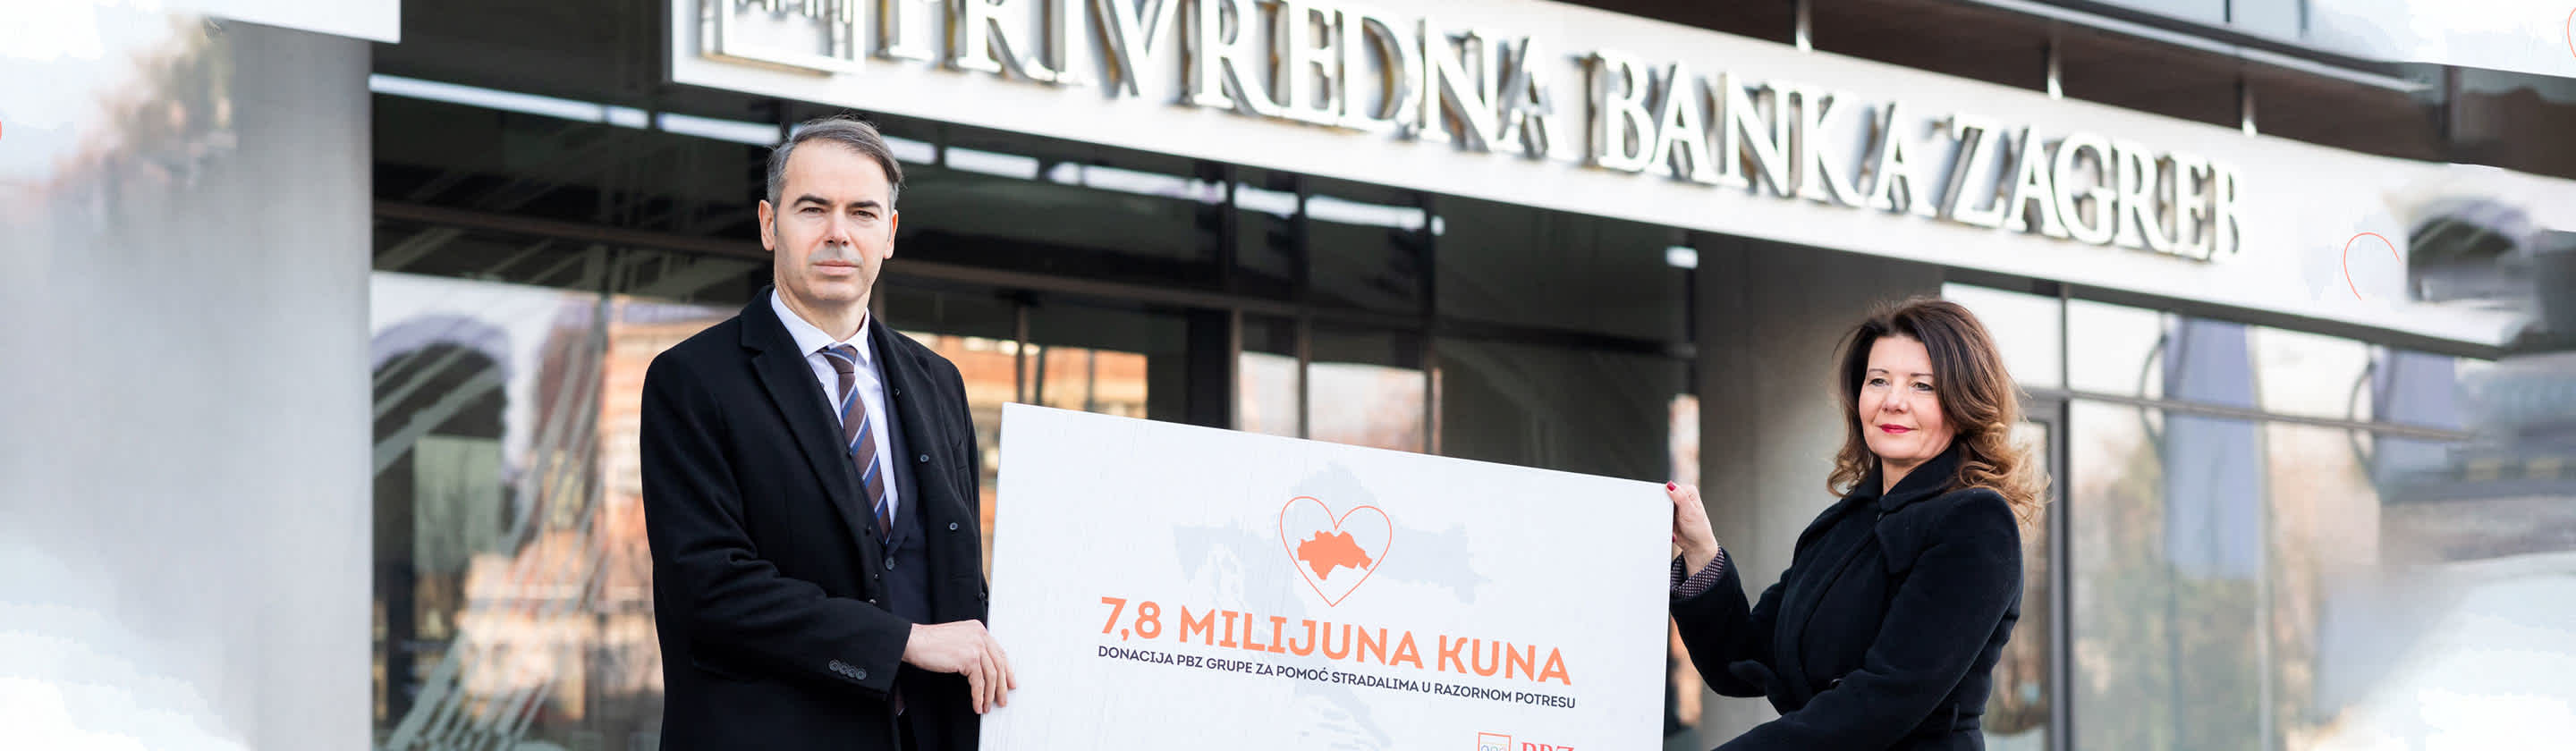 PBZ Group donates HRK 7.8 million in aid of victims of the devastating earthquake